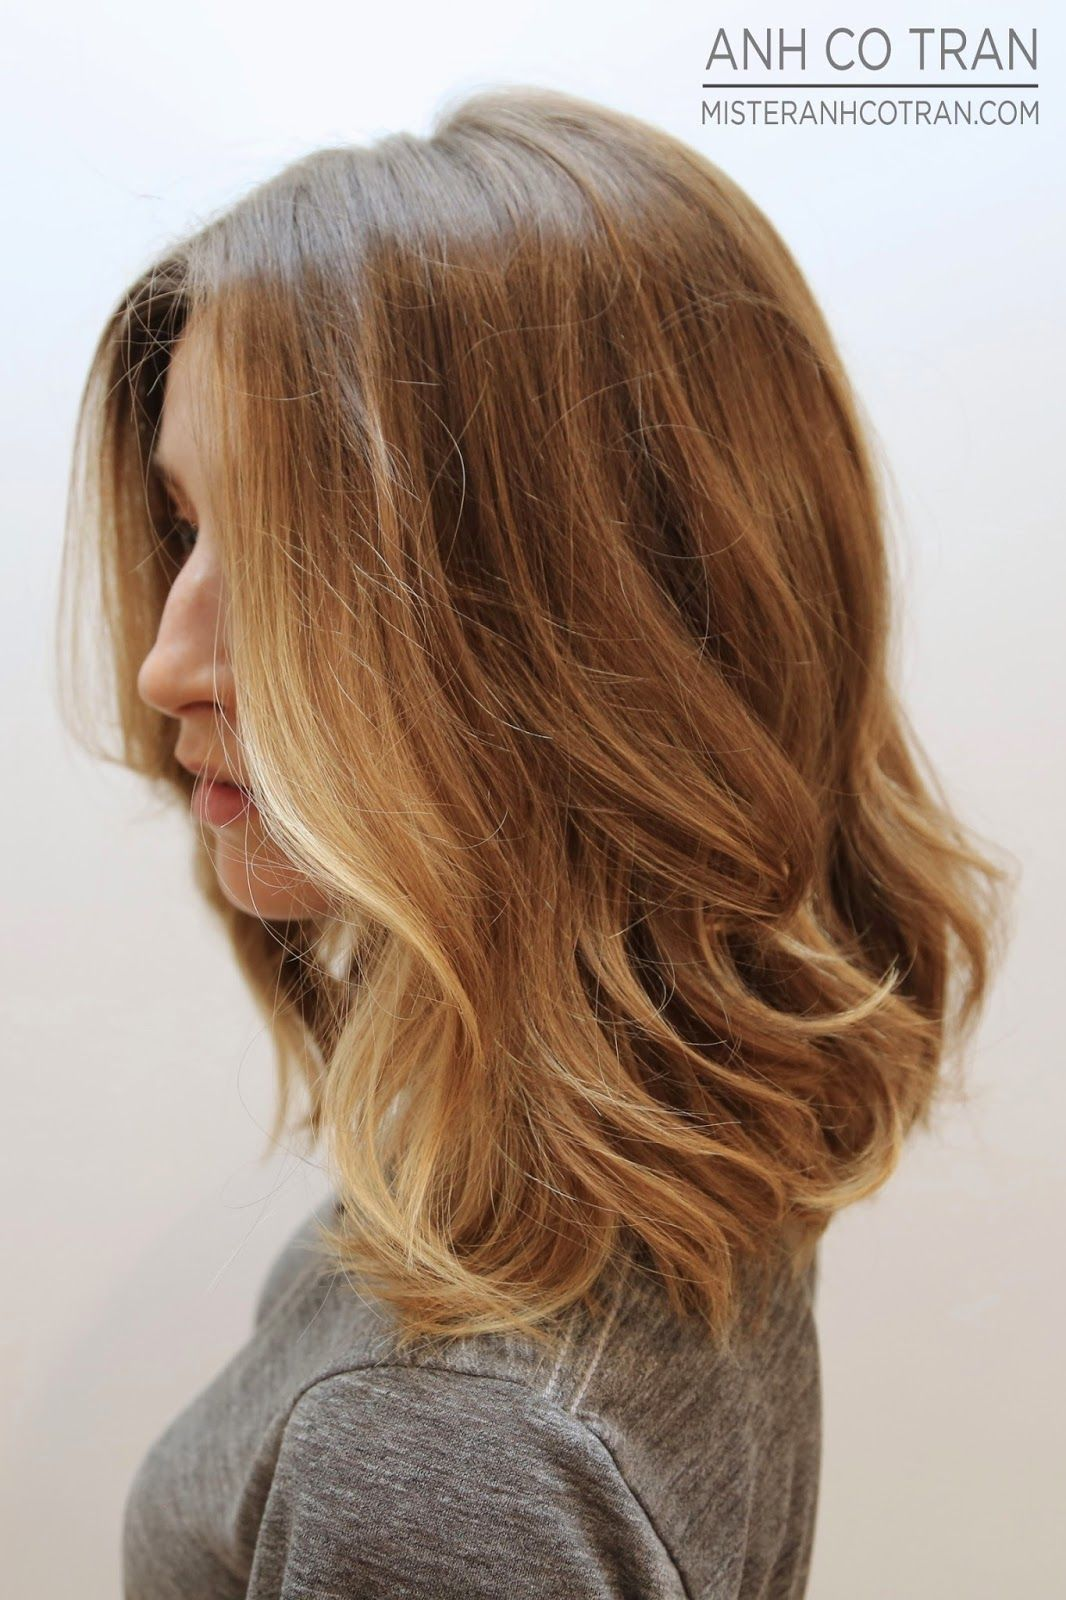 LA: HAIR FIT FOR A MOVIE SET AT RAMIREZ|TRAN SALON! Cut/Style: Anh Co Tran. Appointment inquiries please call Ramirez|Tran Salon in Beverly Hills: 310.724.8167